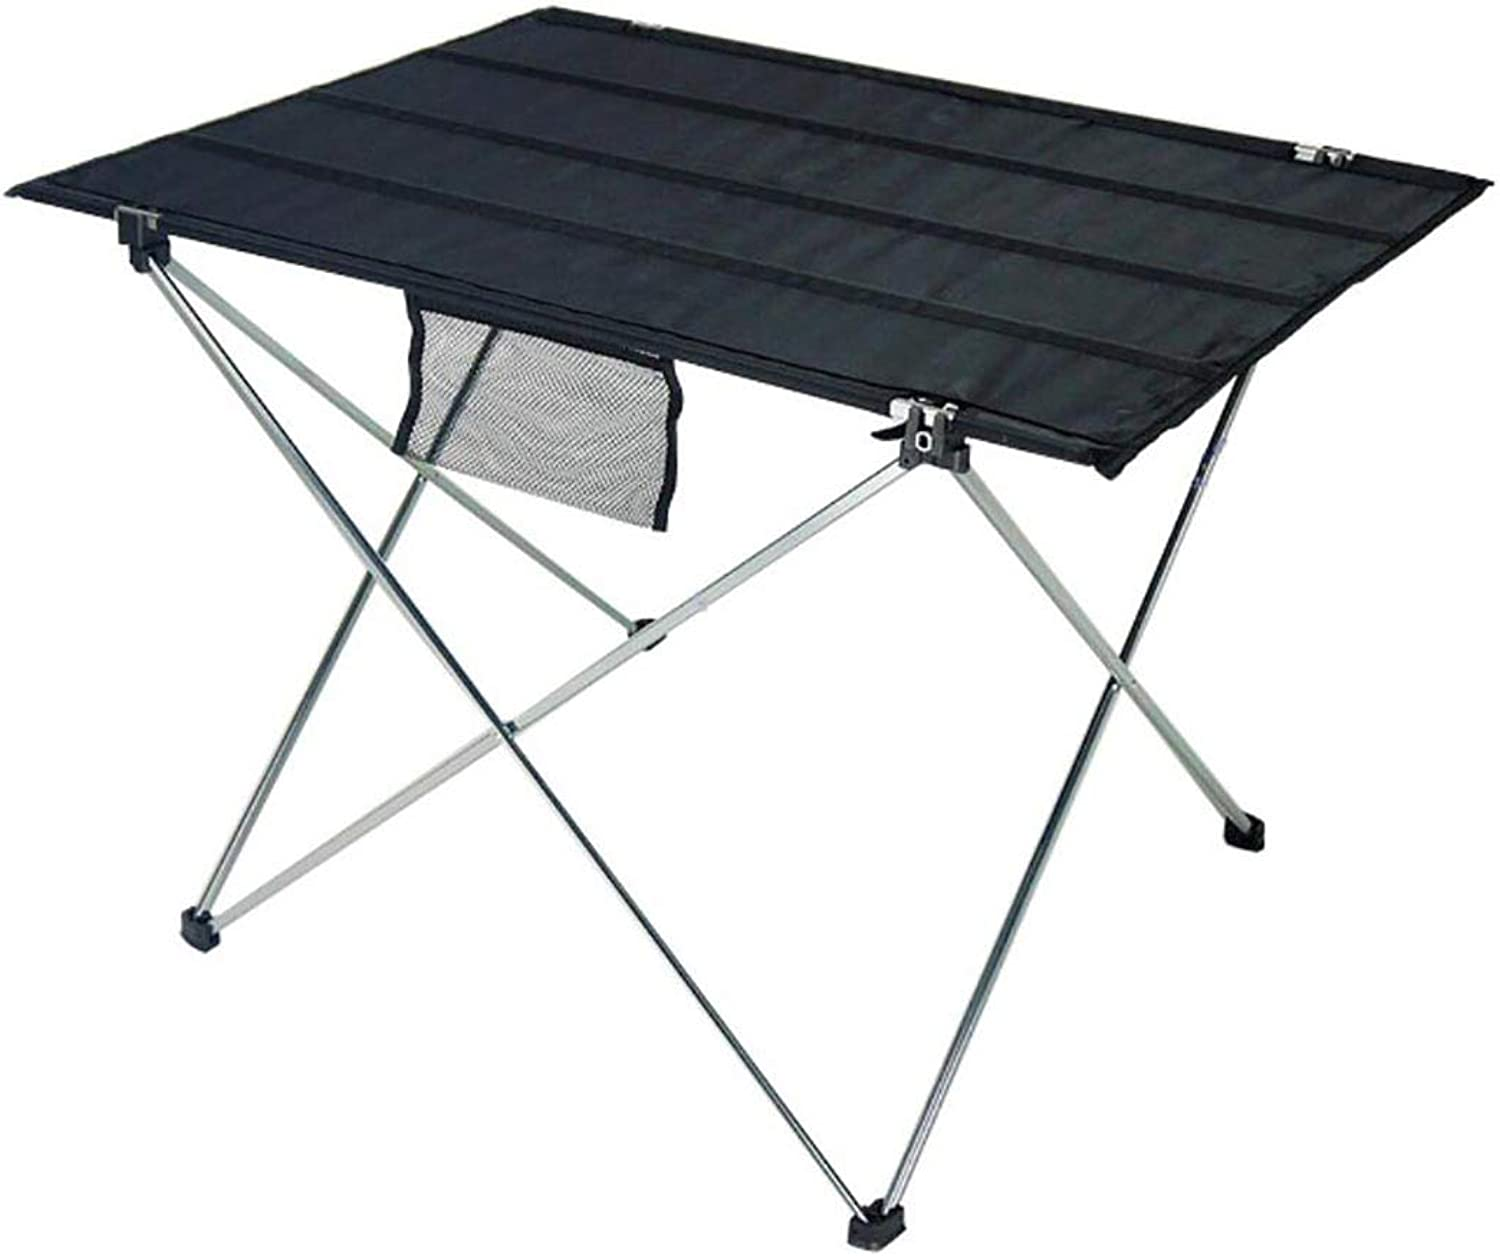 Portable Camping Tables with Aluminum Table Top,Ultralight Folding, Two Sizes,Fit Indoor and Outdoor Picnic, BBQ, Beach, Fishing